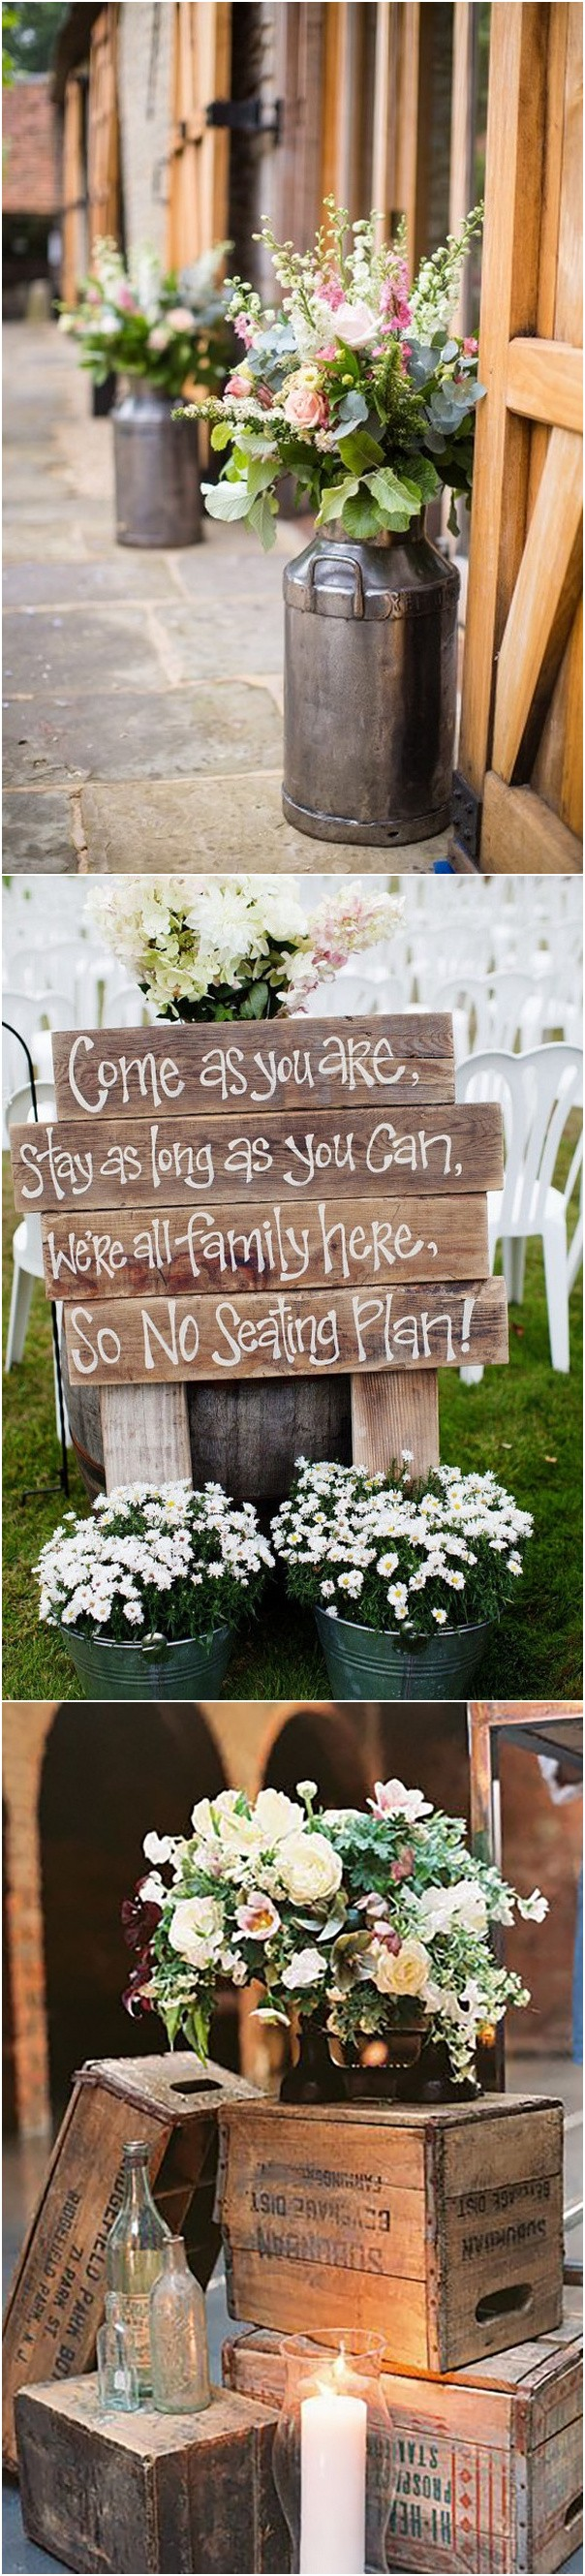 country themed barn wedding decorations